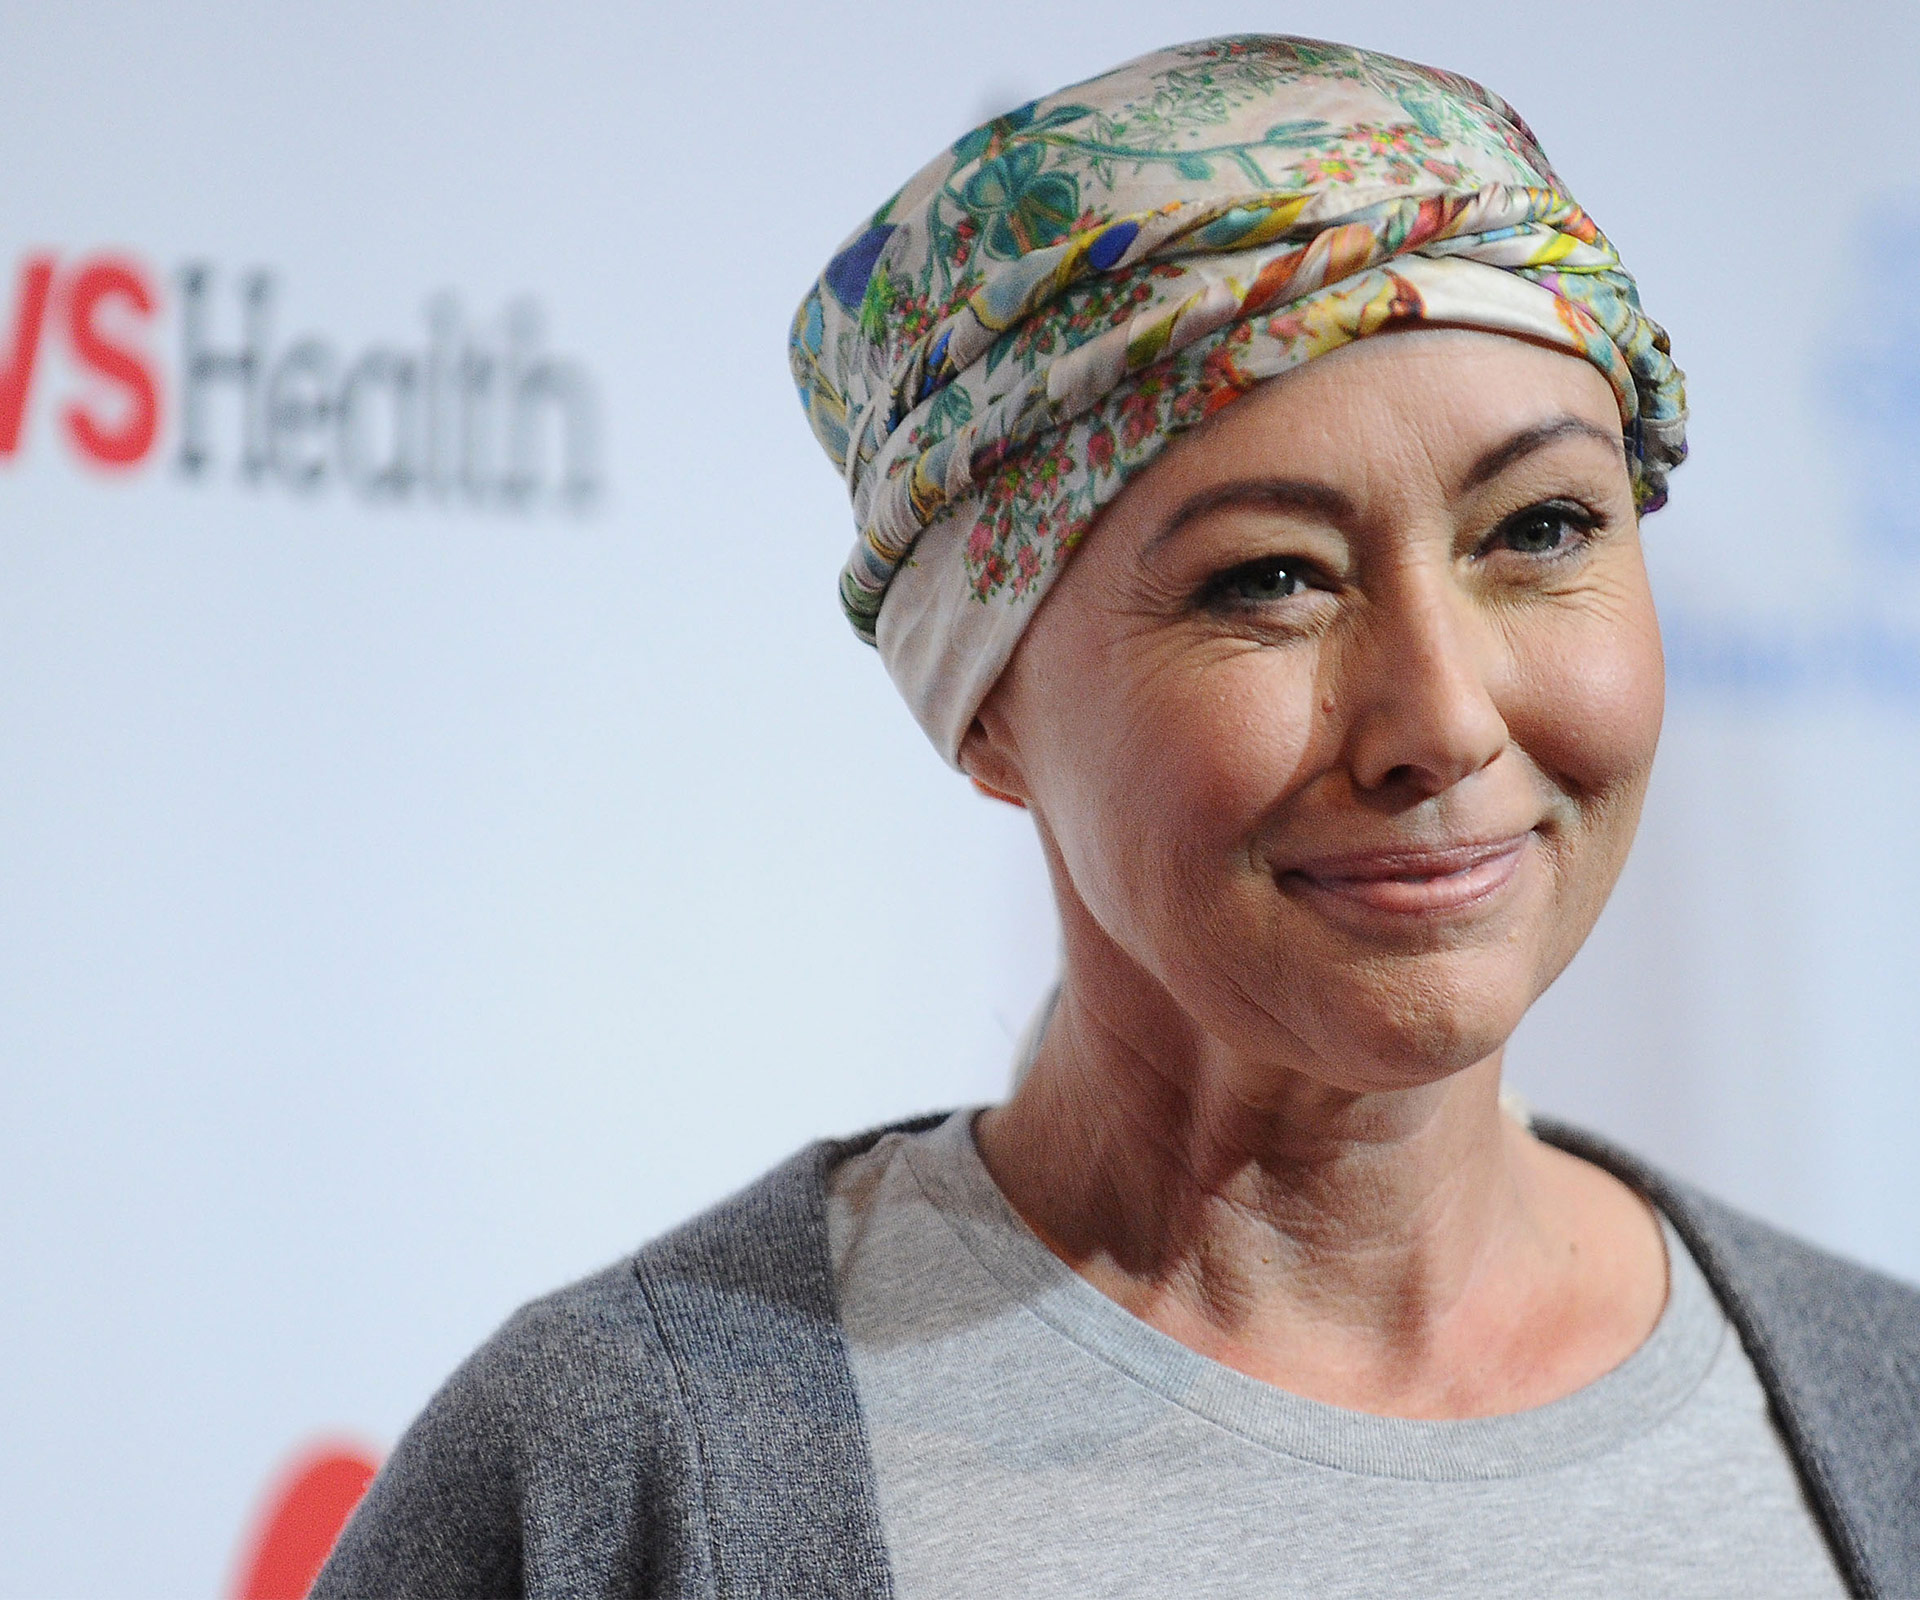 Shannen Doherty Shares Moving Picture of Post-Chemotherapy Moment